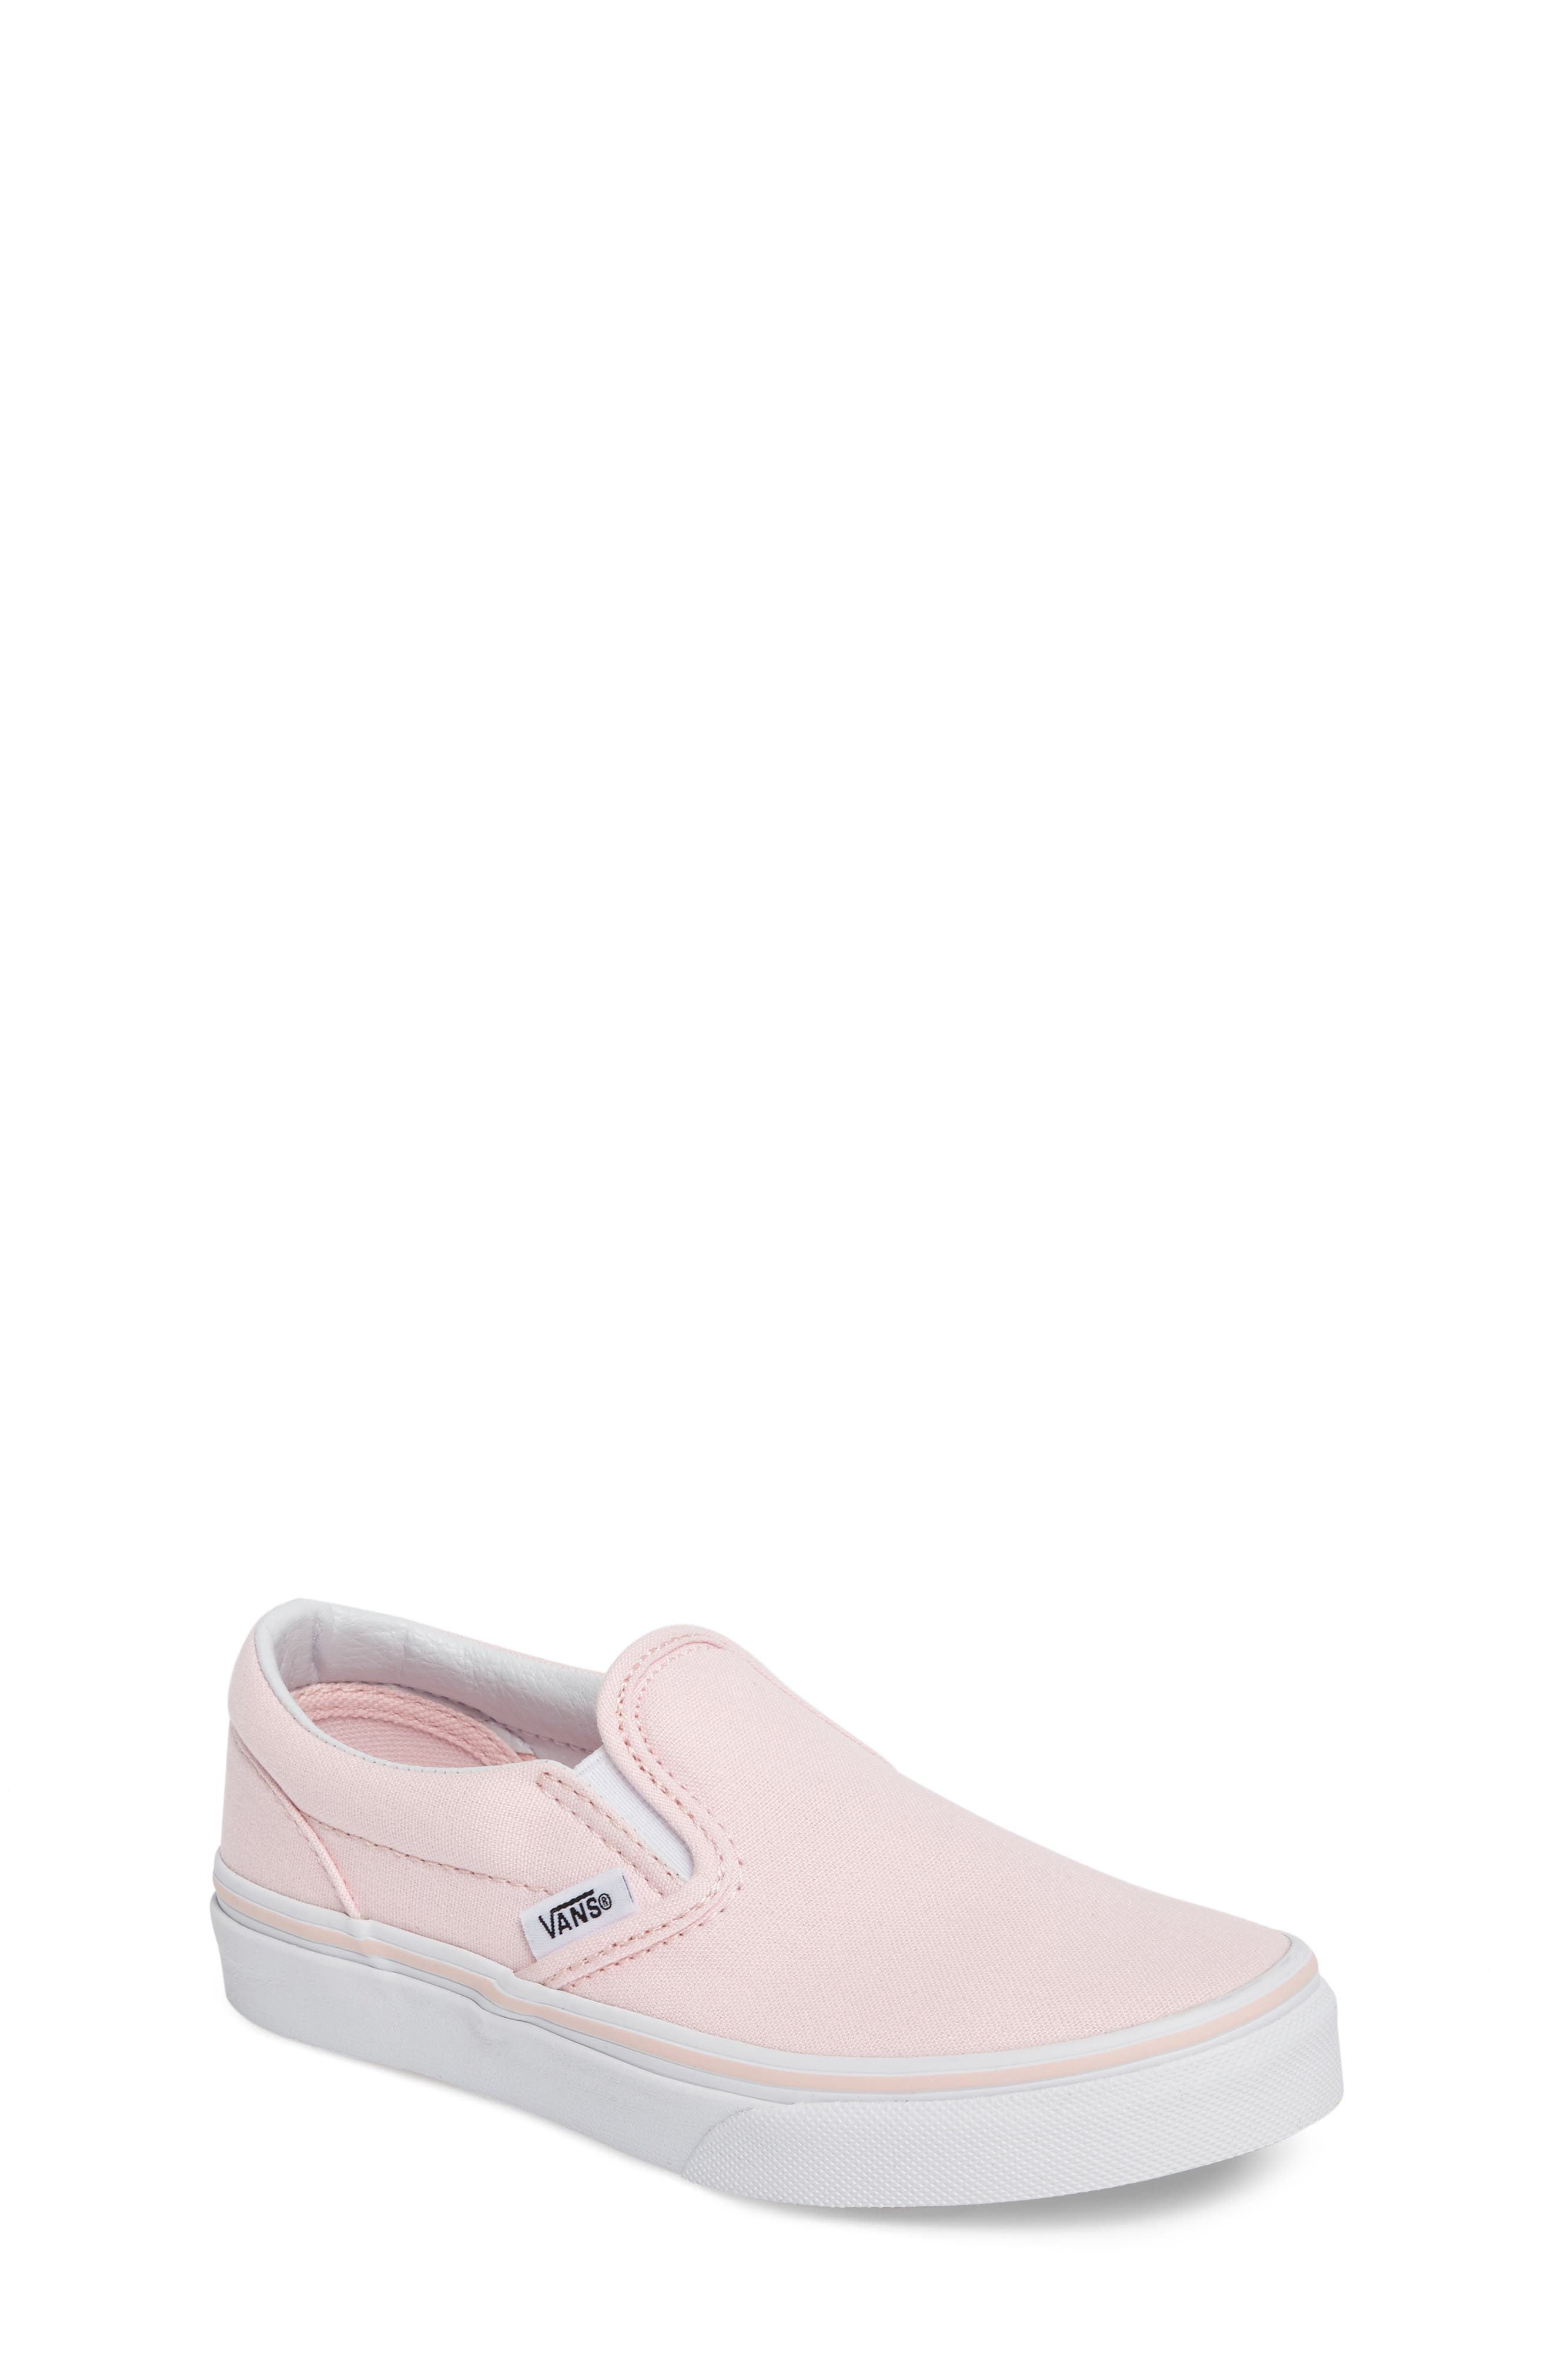 Classic Slip-On Sneaker,                         Main,                         color, Ballerina/ True White